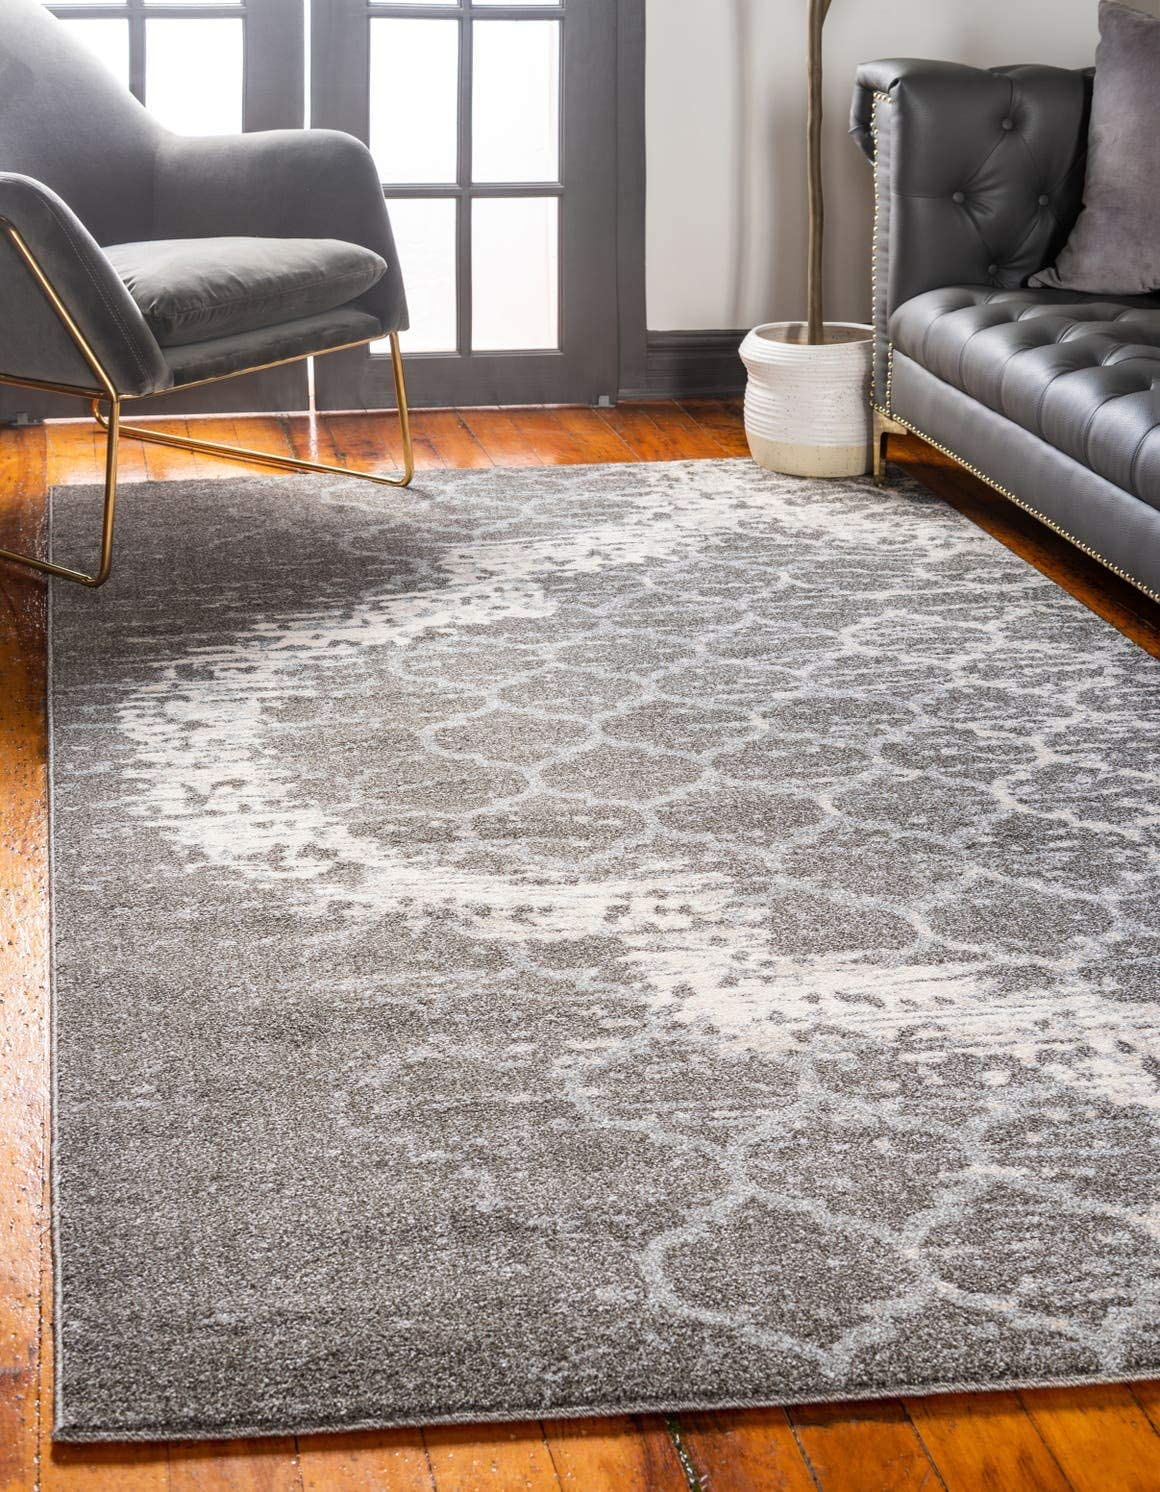 Unique Loom Trellis Collection Geometric Modern Light Gray Area Rug 9 0 x 12 0